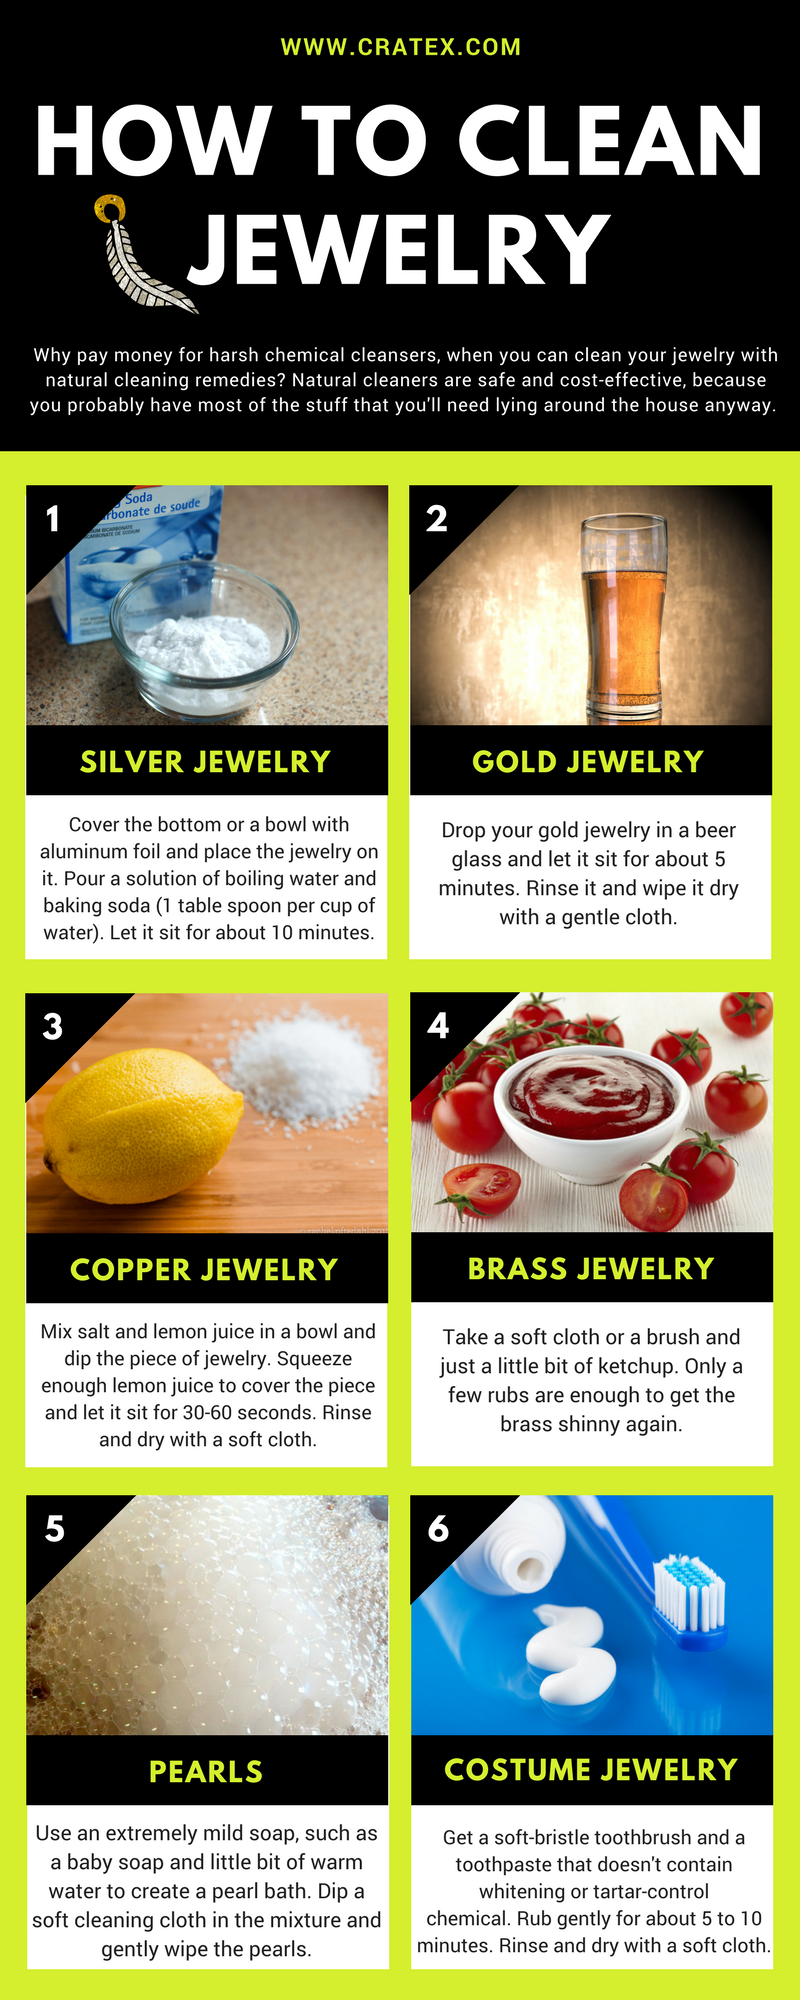 How to clean every type of jewelry silver, gold, copper